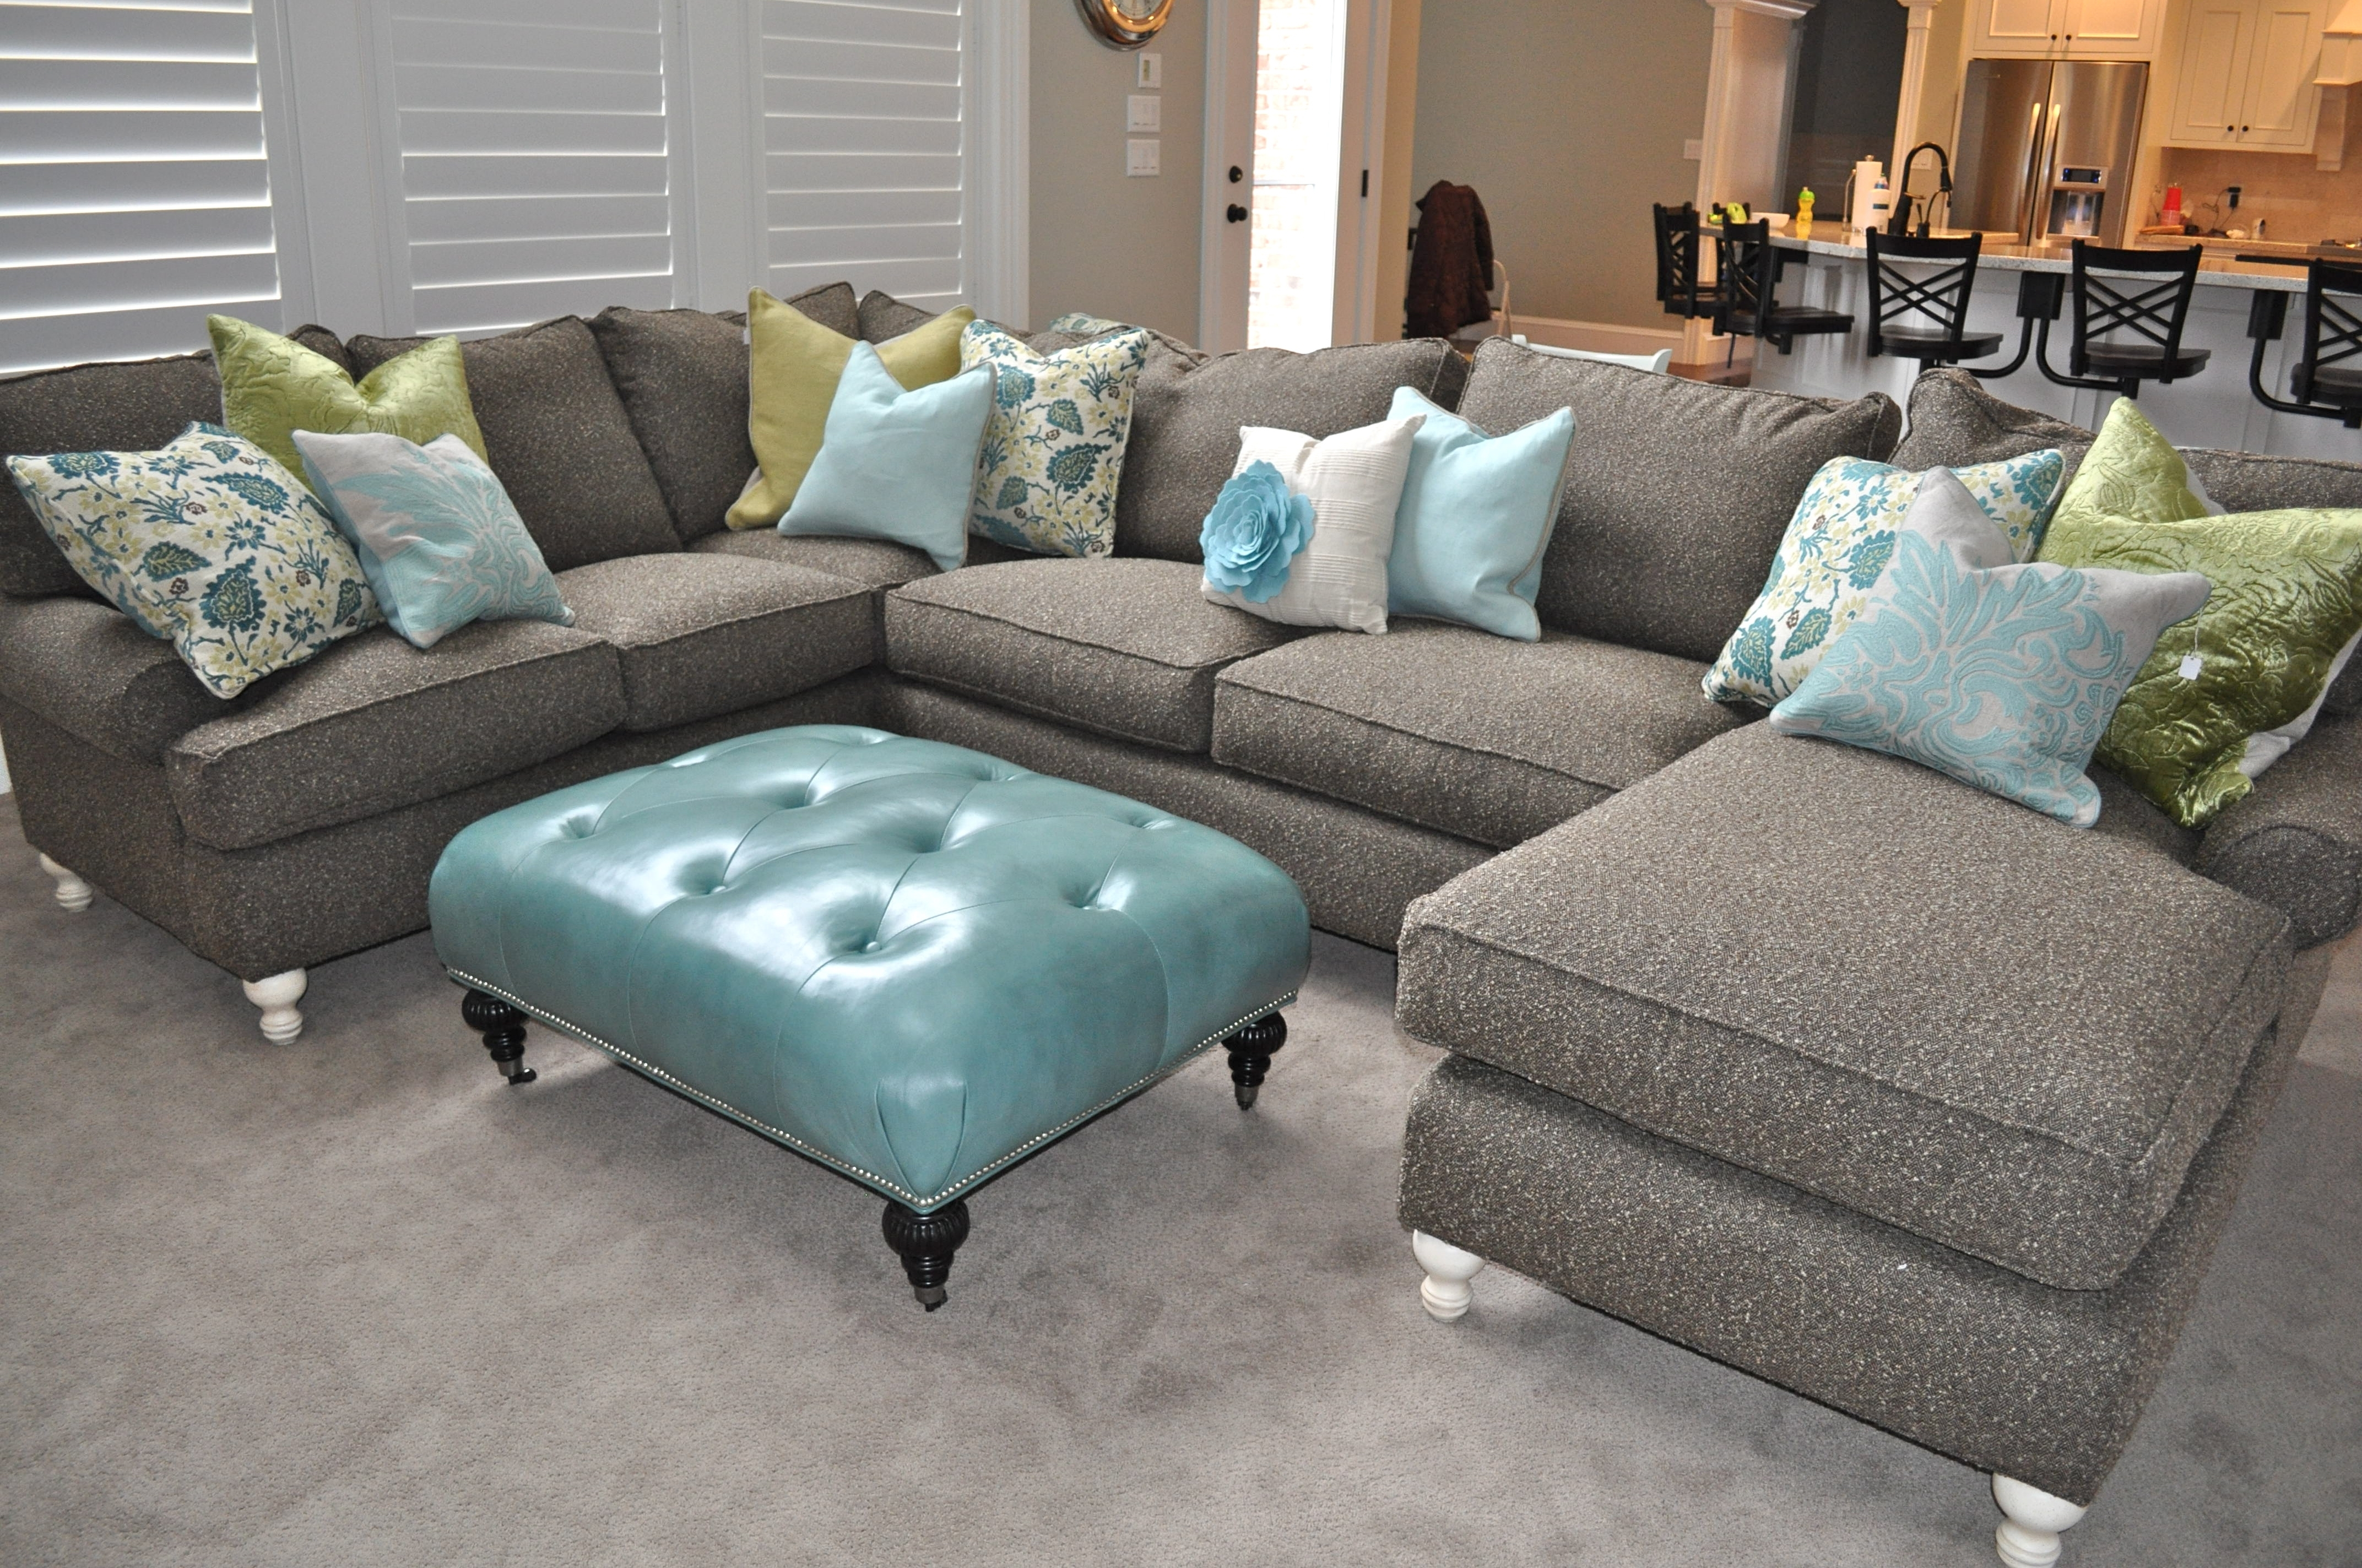 Most Recent Charcoal Gray Sectional Sofas With Chaise Lounge Regarding Amusing Sectional Sofa With Chaise And Ottoman 81 On Charcoal Gray (View 15 of 15)